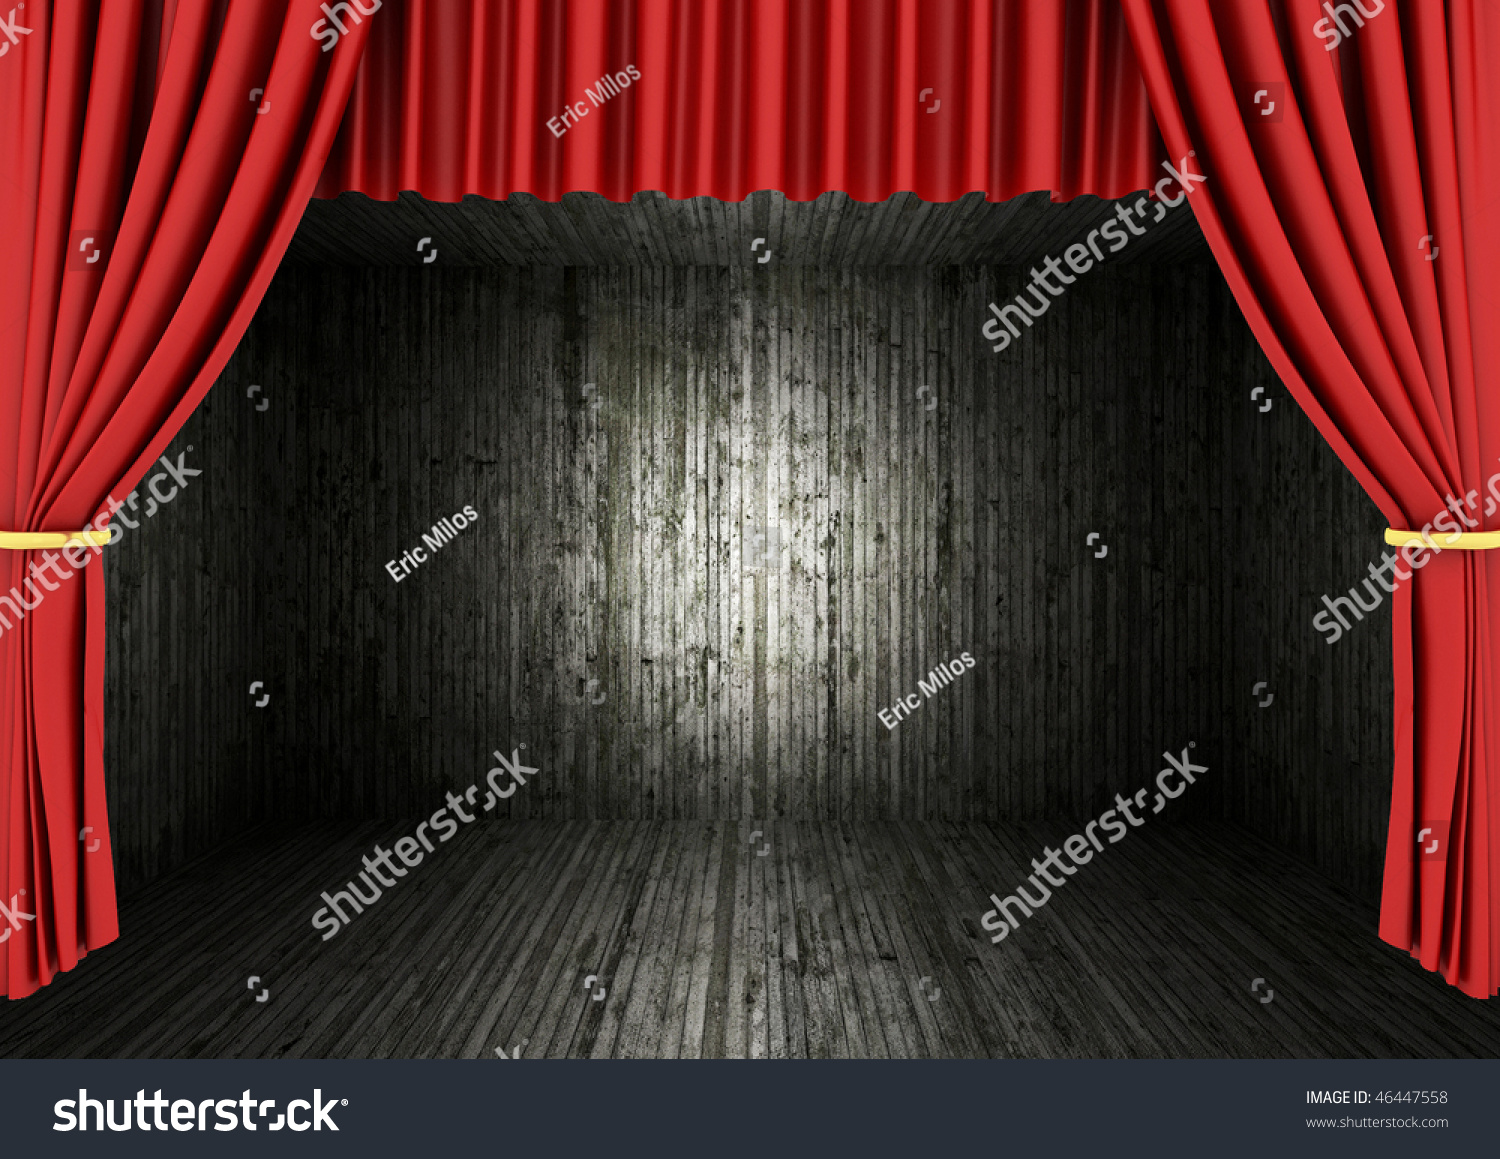 on clip drapes curtains theater psdgraphics art red stage curtain download theatre free background